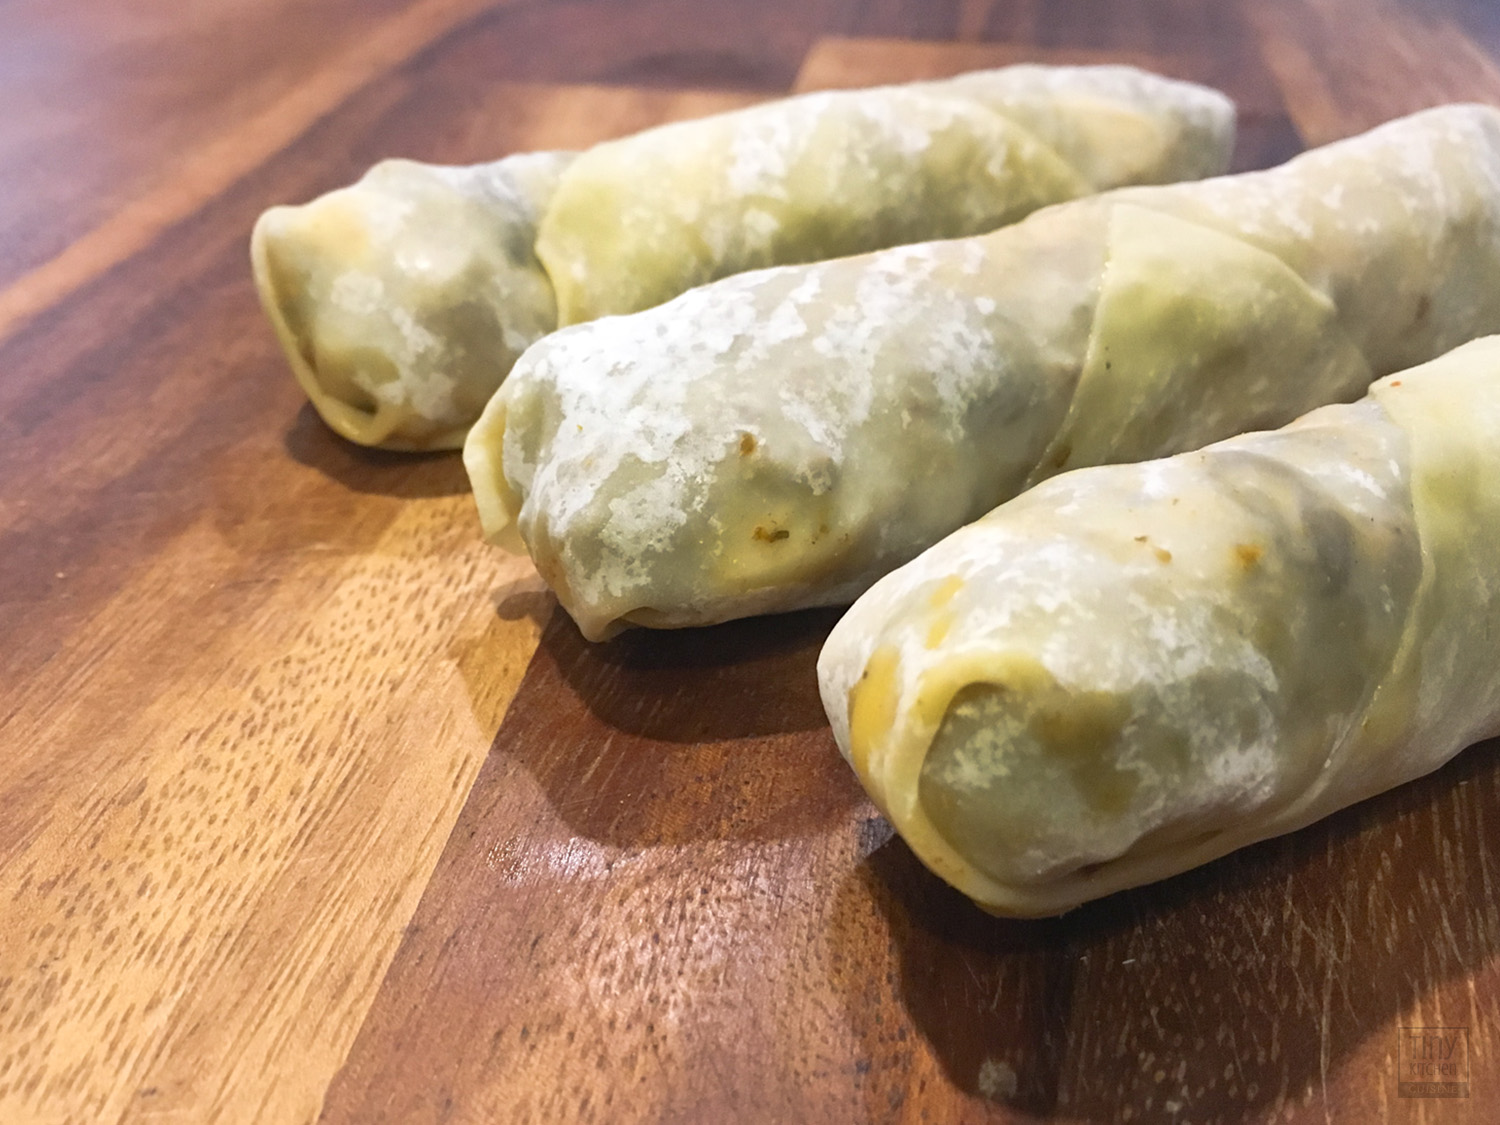 Uncooked vegetarian empanada rolls look very similar to chinese egg rolls. When rolled tightly, these tasty snacks fry up golden brown, crispy, and delicious! | Tiny Kitchen Cuisine | https://tiny.kitchen/